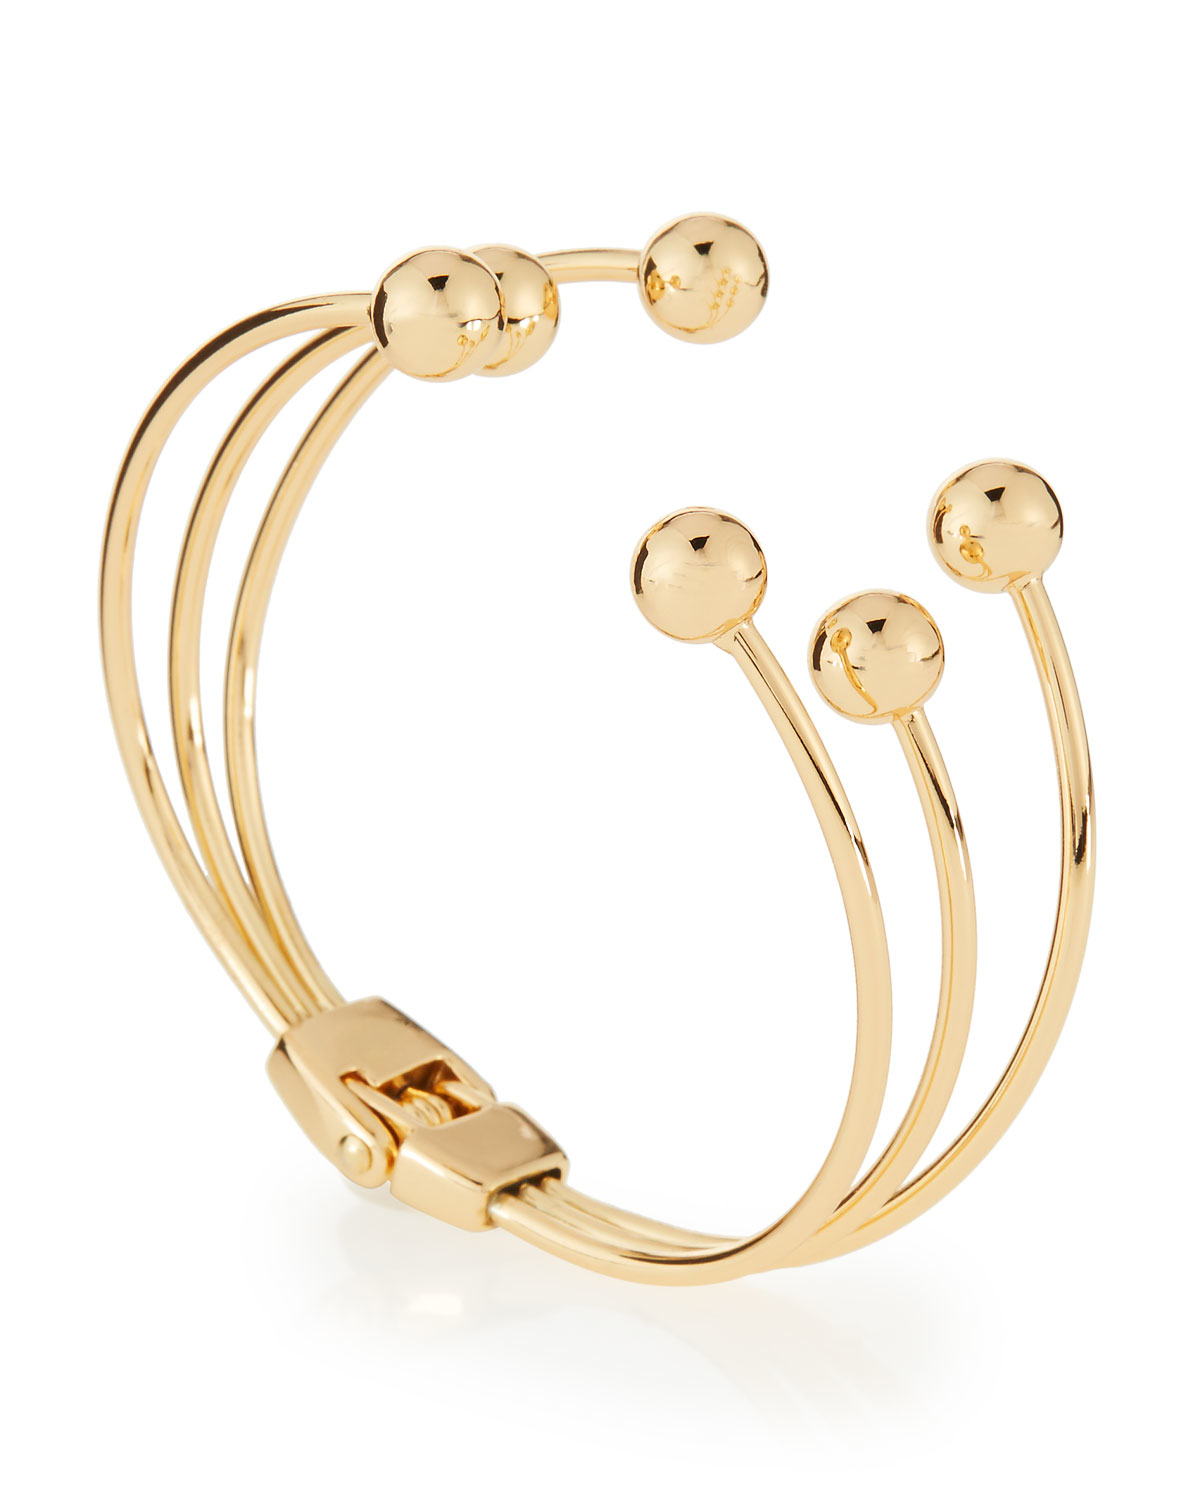 Lyst Lydell Nyc Golden Triple Row Hinged Ball Cuff